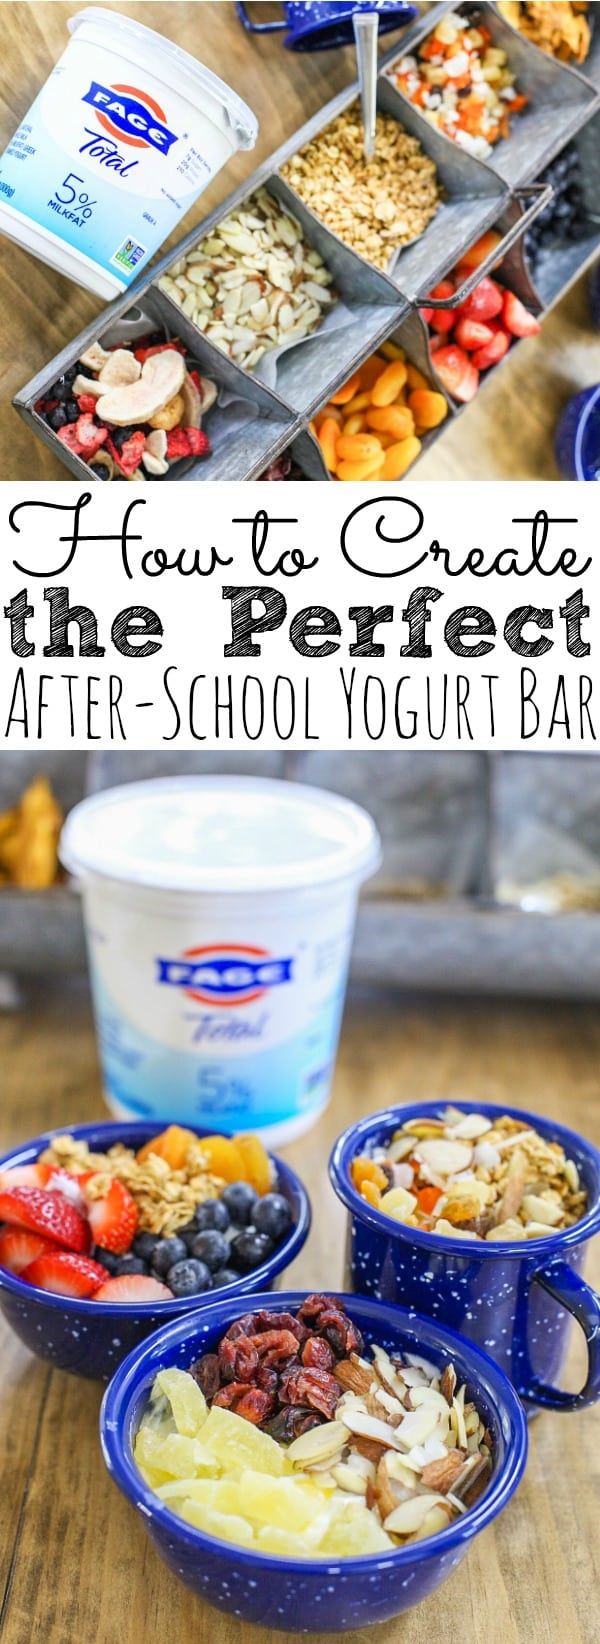 After-School Yogurt Bar